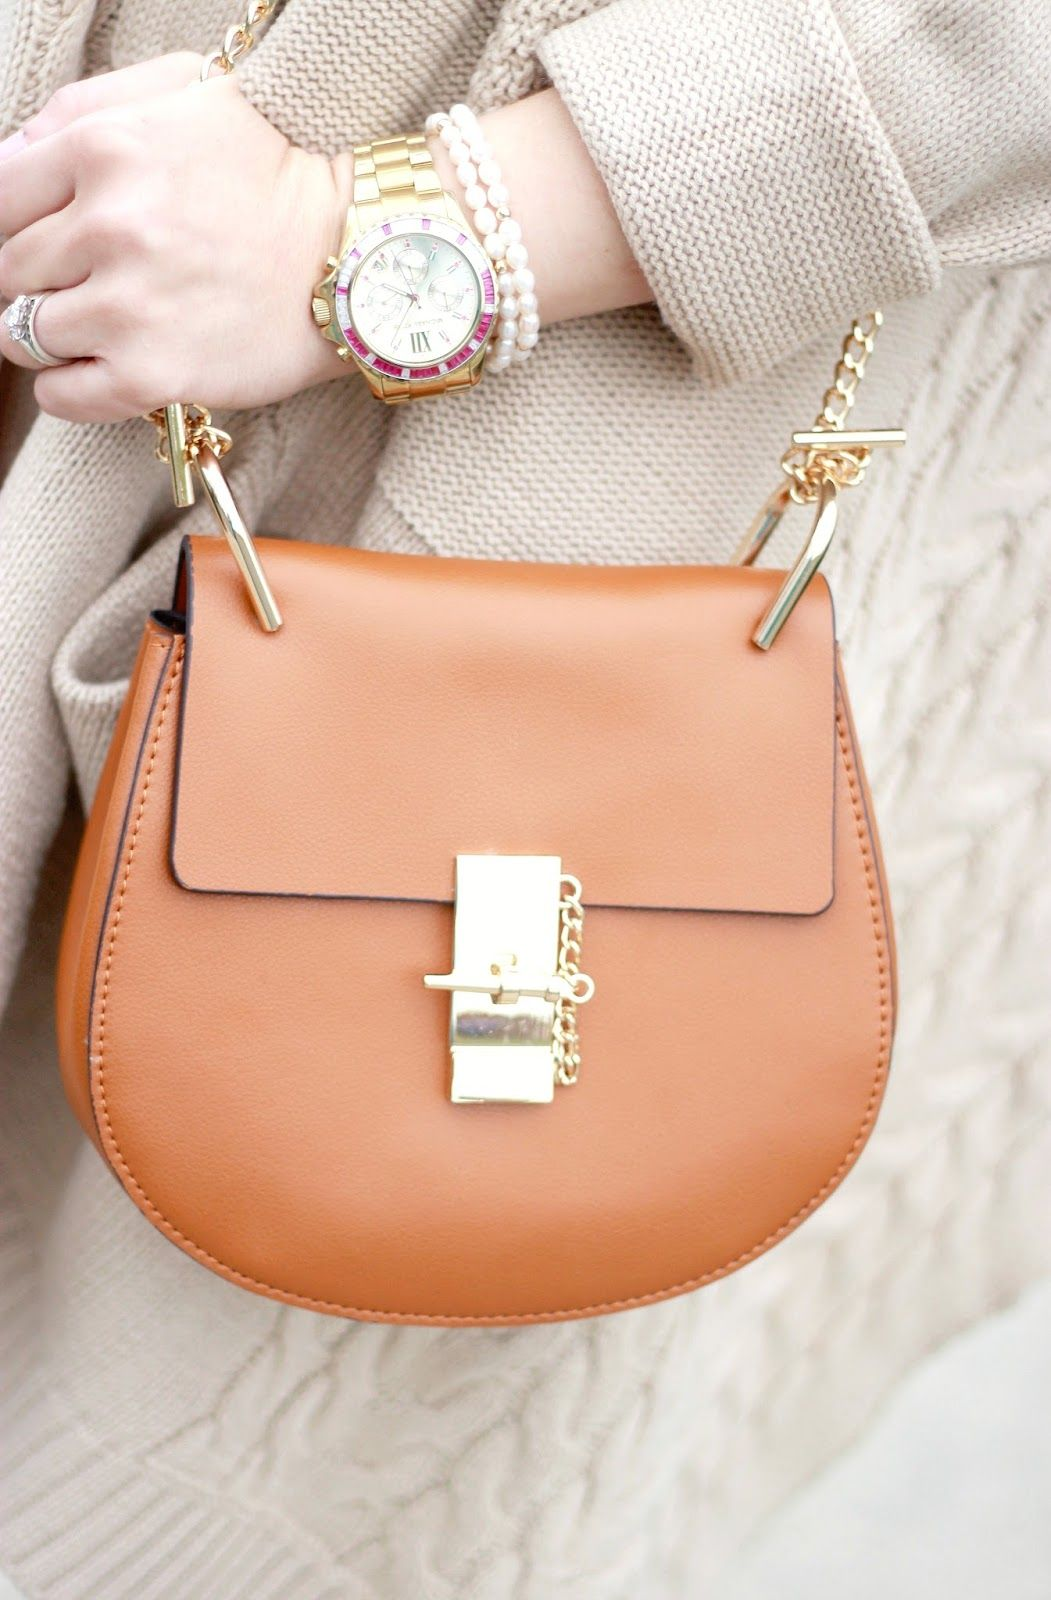 aae1023c99 Cloudy Day Knits Link Up Chloe Drew Bag